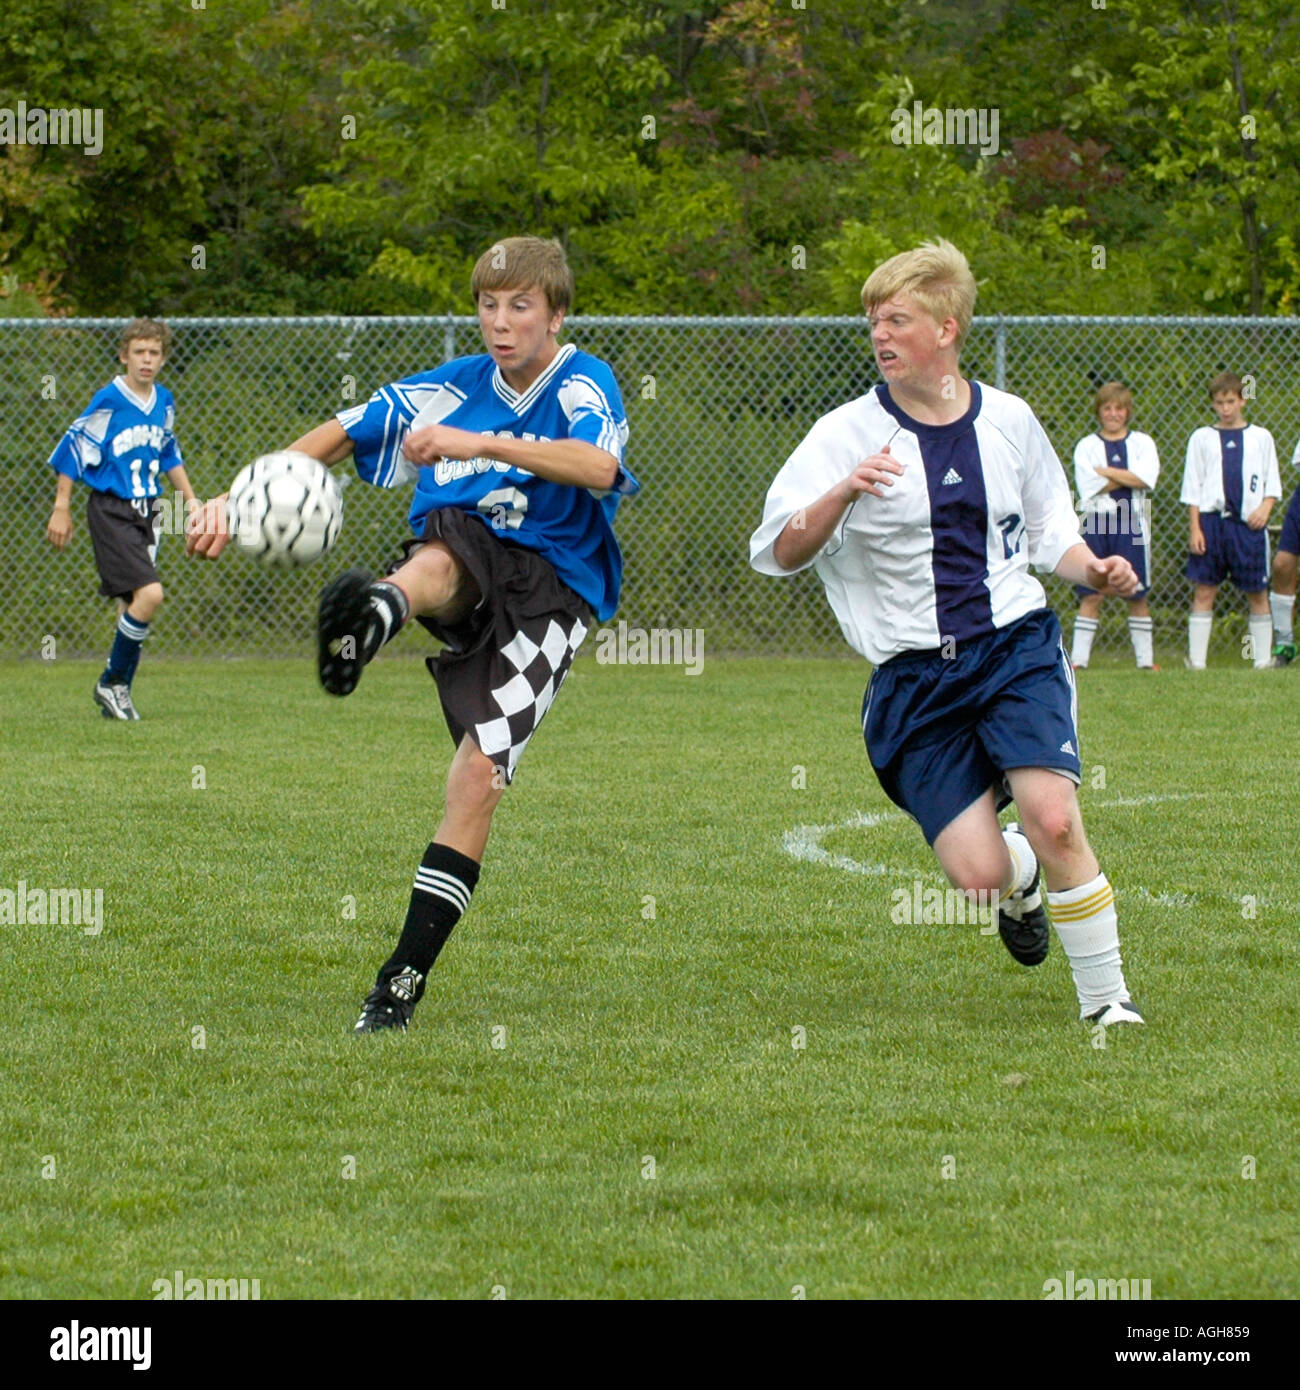 High School Soccer Futbol Fußball-Action Port Huron, Michigan Stockbild